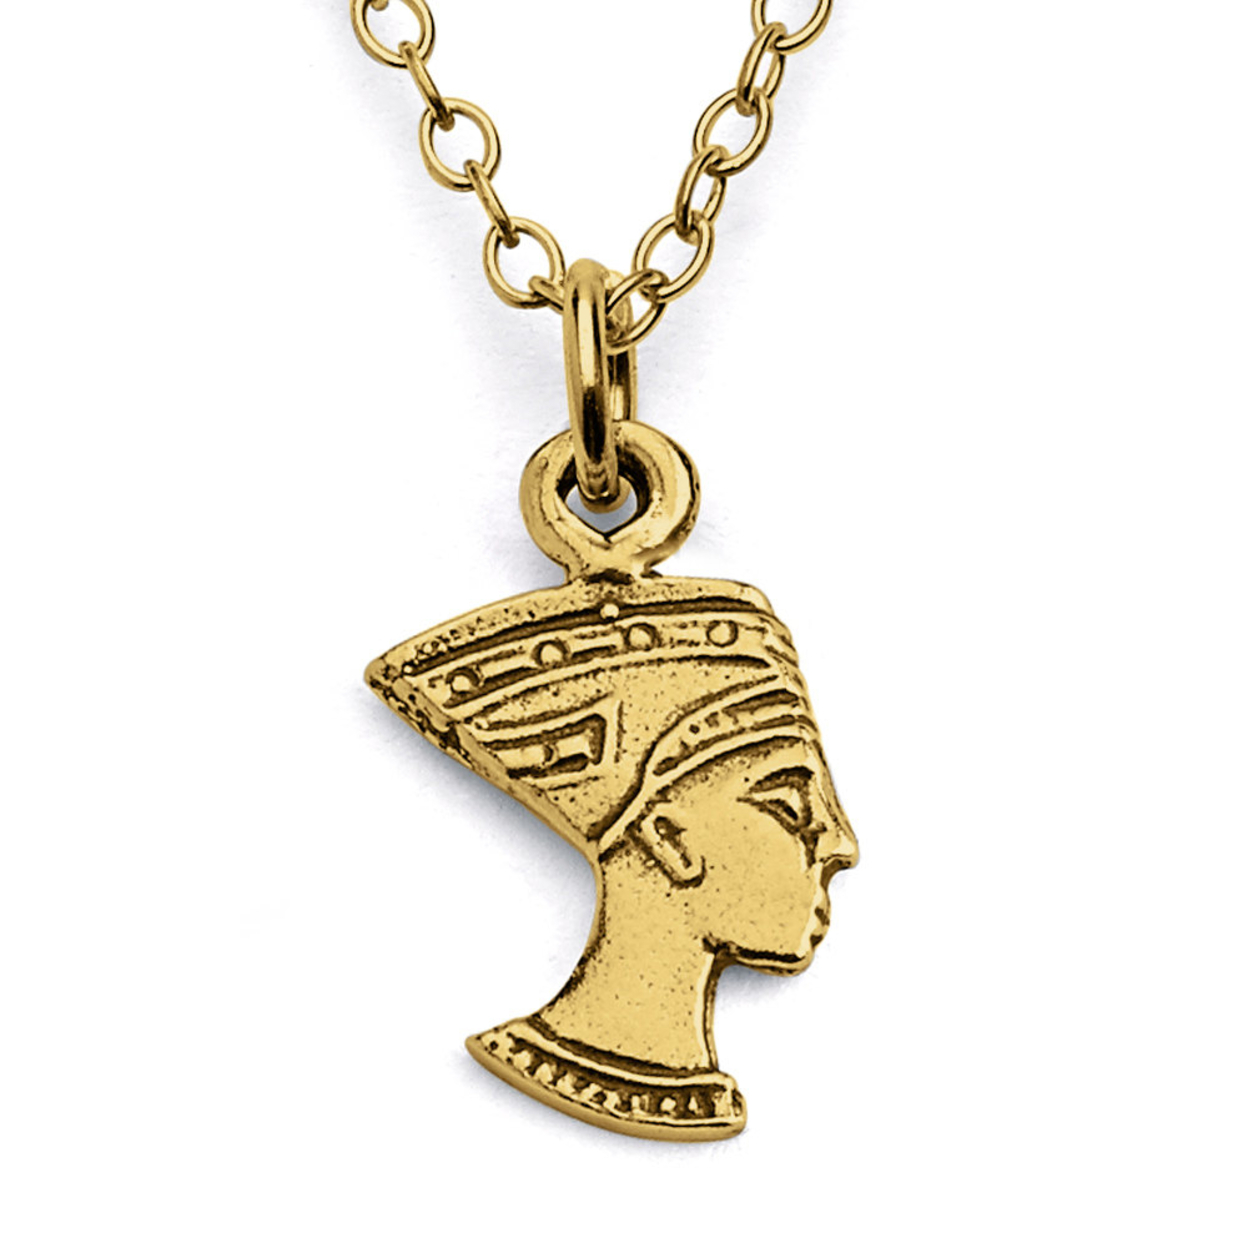 Nefertiti Ancient Egyptian Queen Historical Figure Charm Pendant Necklace #14k Gold Plated Over 925 Sterling Silver #azaggi N0024g 12 Child